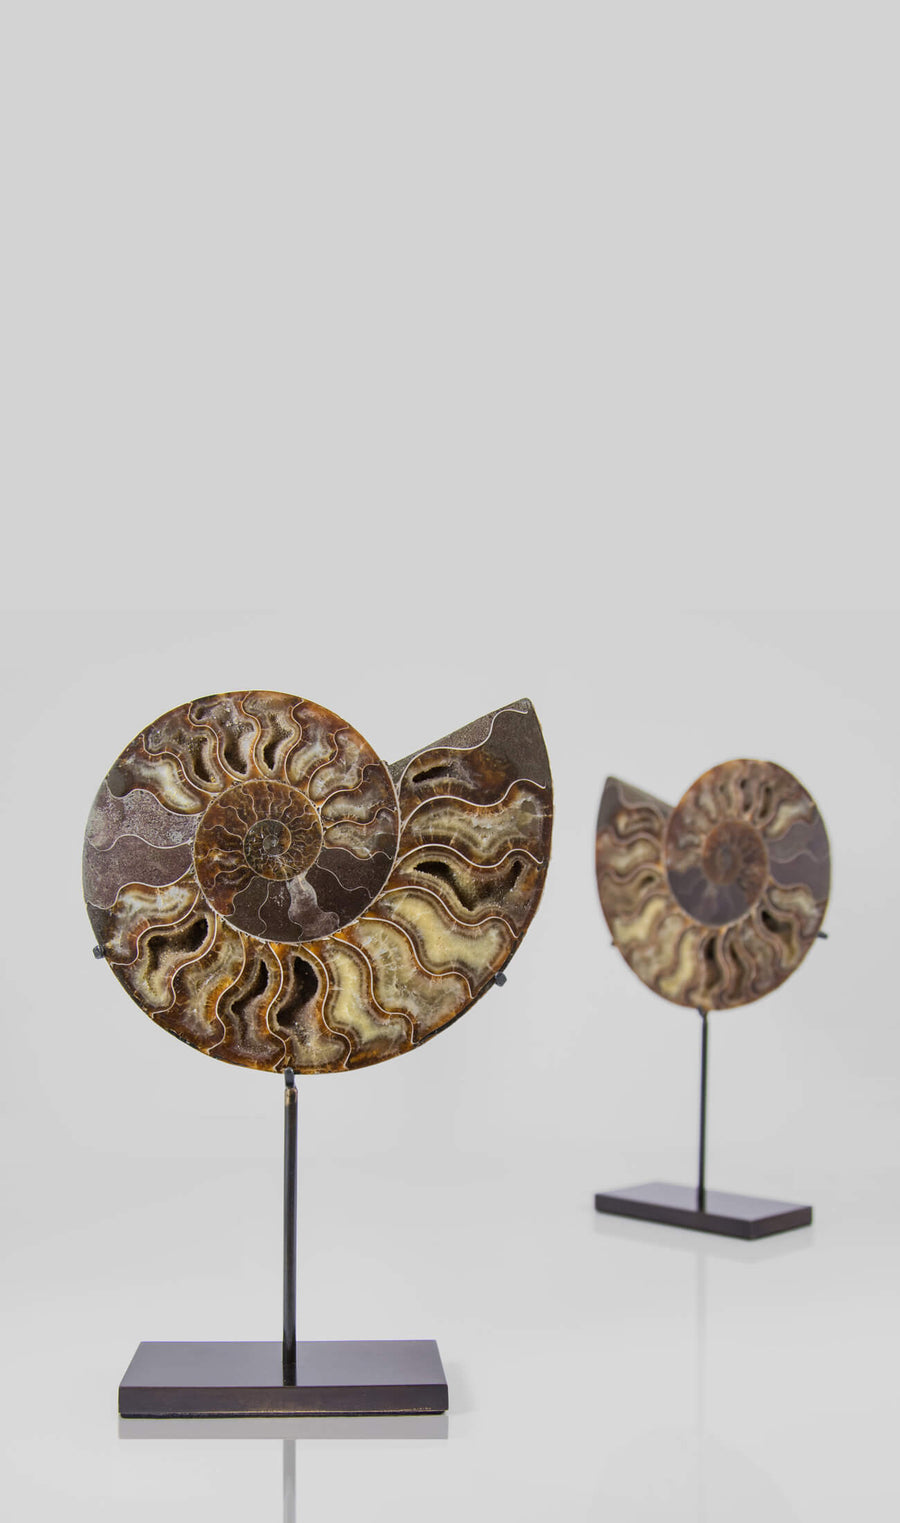 Cleoniceras Ammonite Pairs on Bronze Stands Measuring 237mm